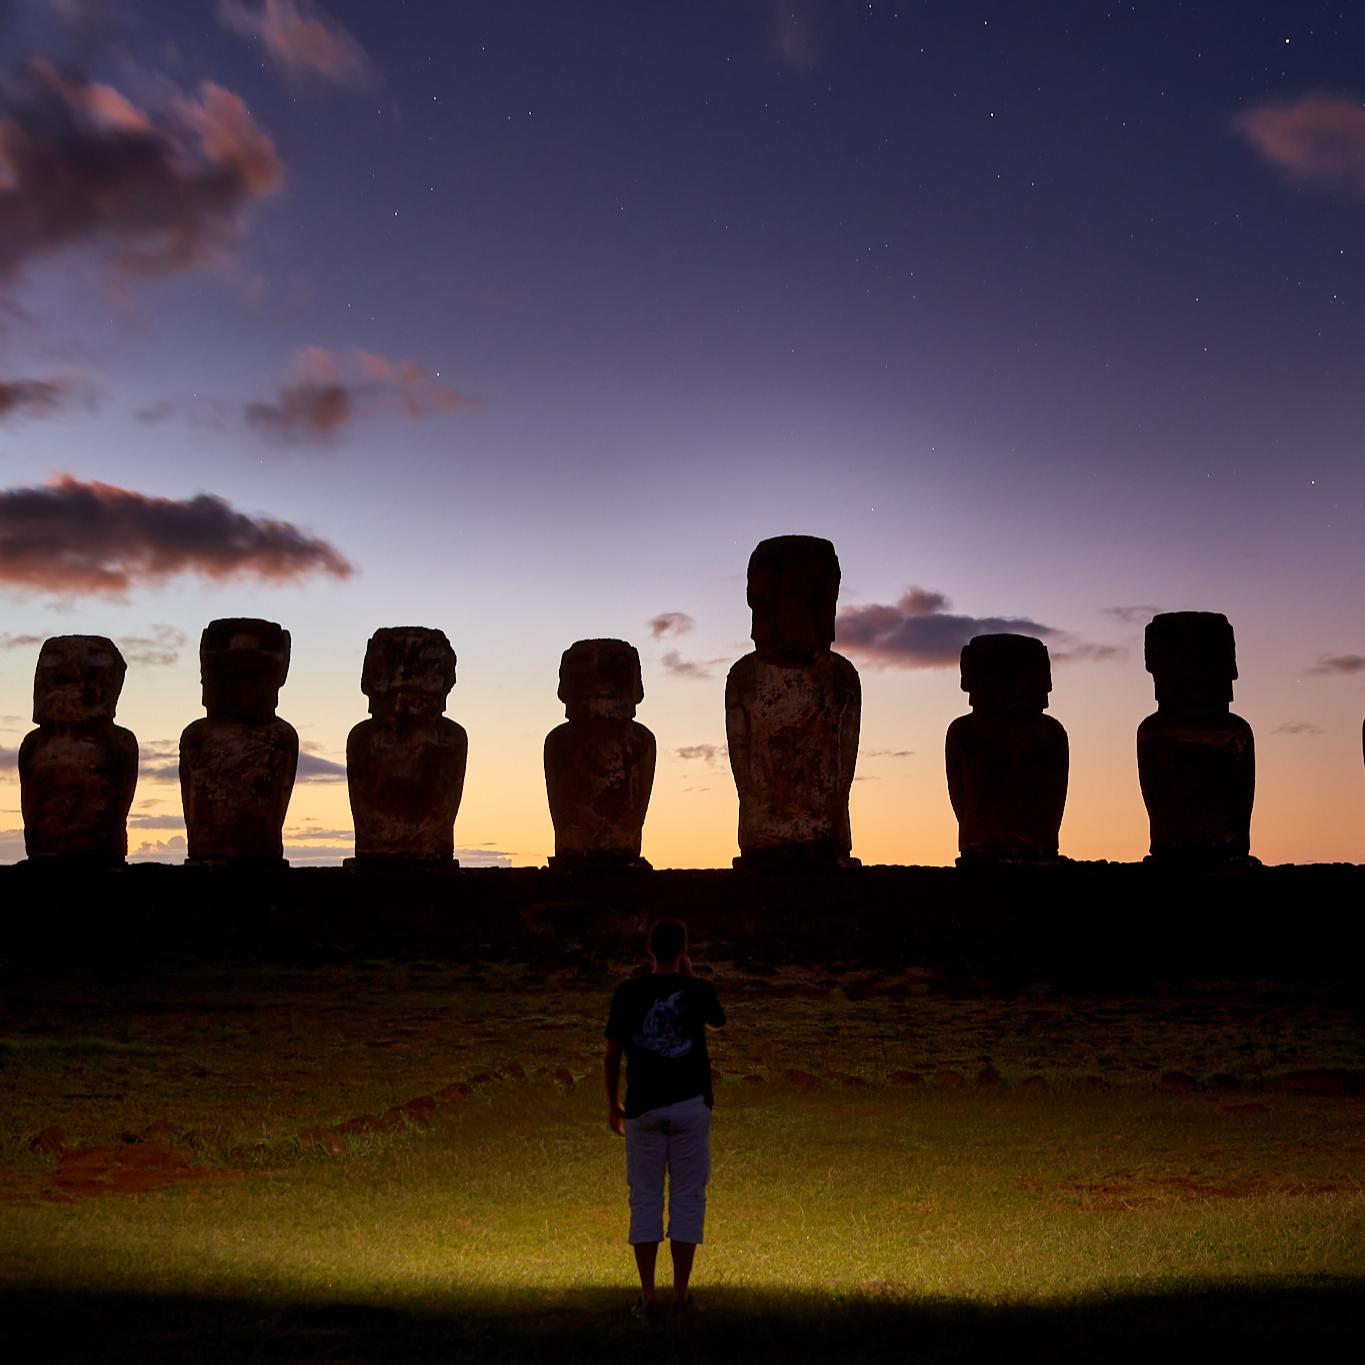 Dawn on Easter island, standing in front of Moai.